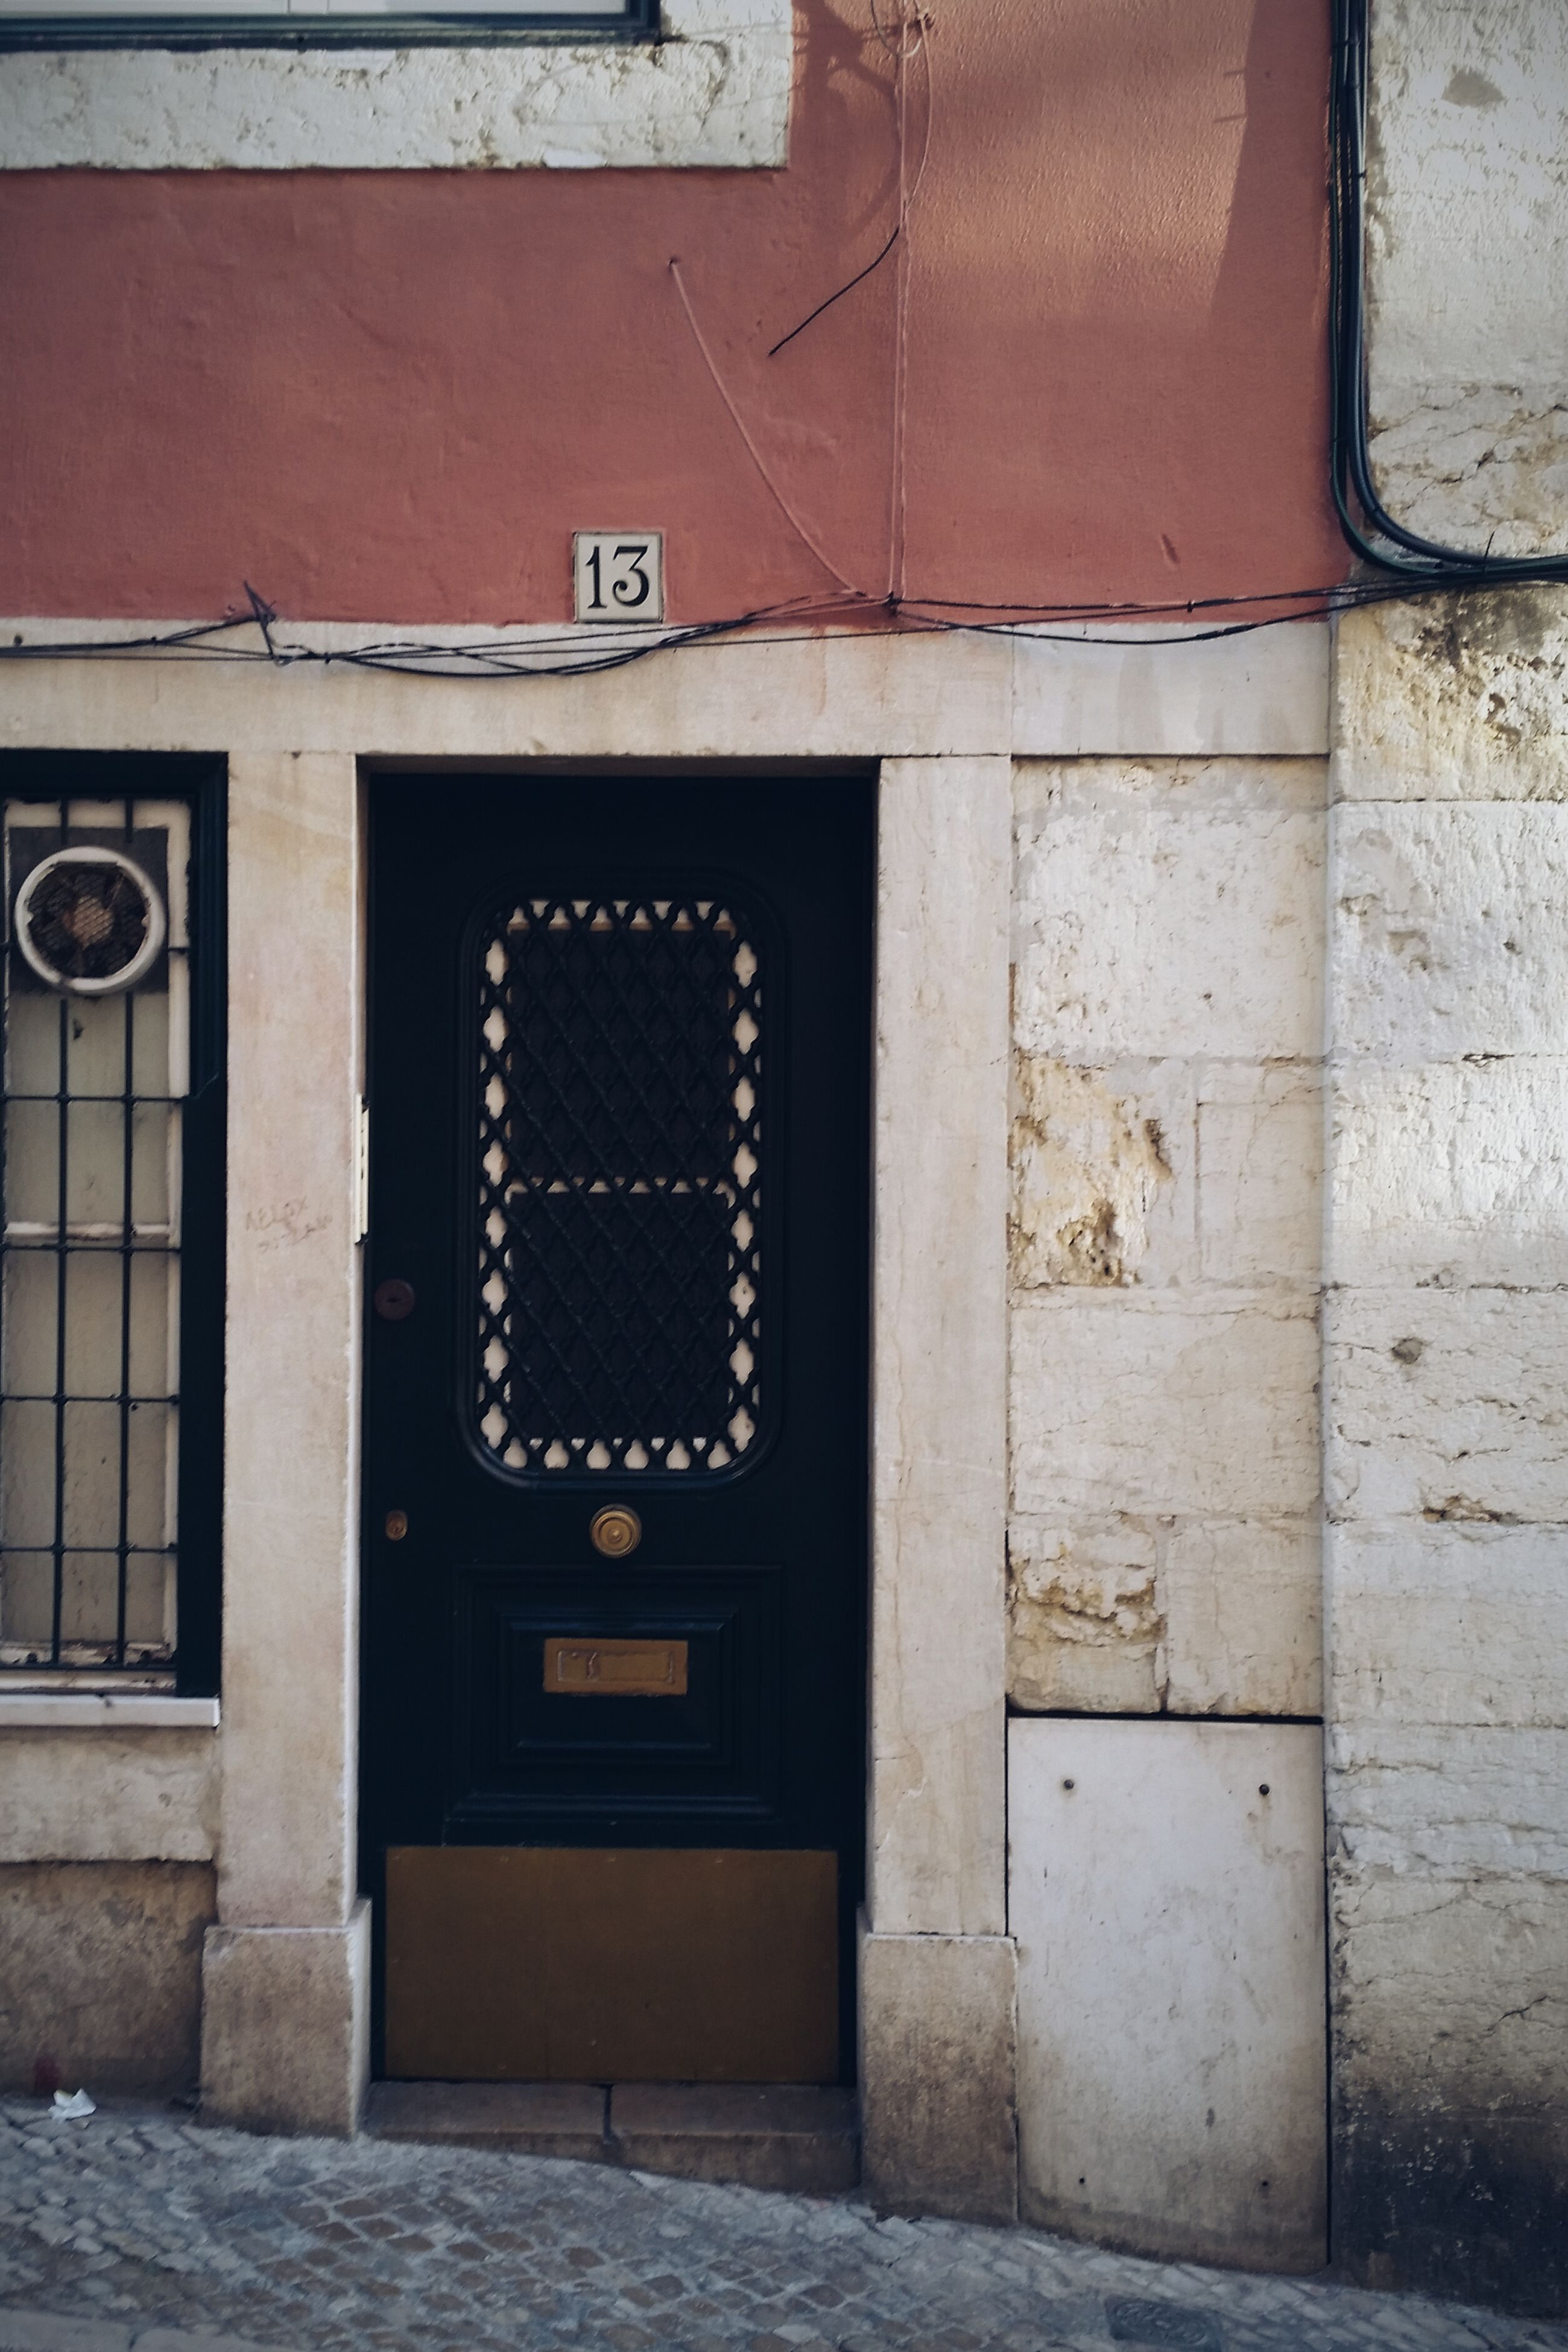 architecture, built structure, building exterior, door, closed, entrance, wall - building feature, text, communication, window, house, brick wall, old, wall, building, day, safety, no people, outdoors, western script